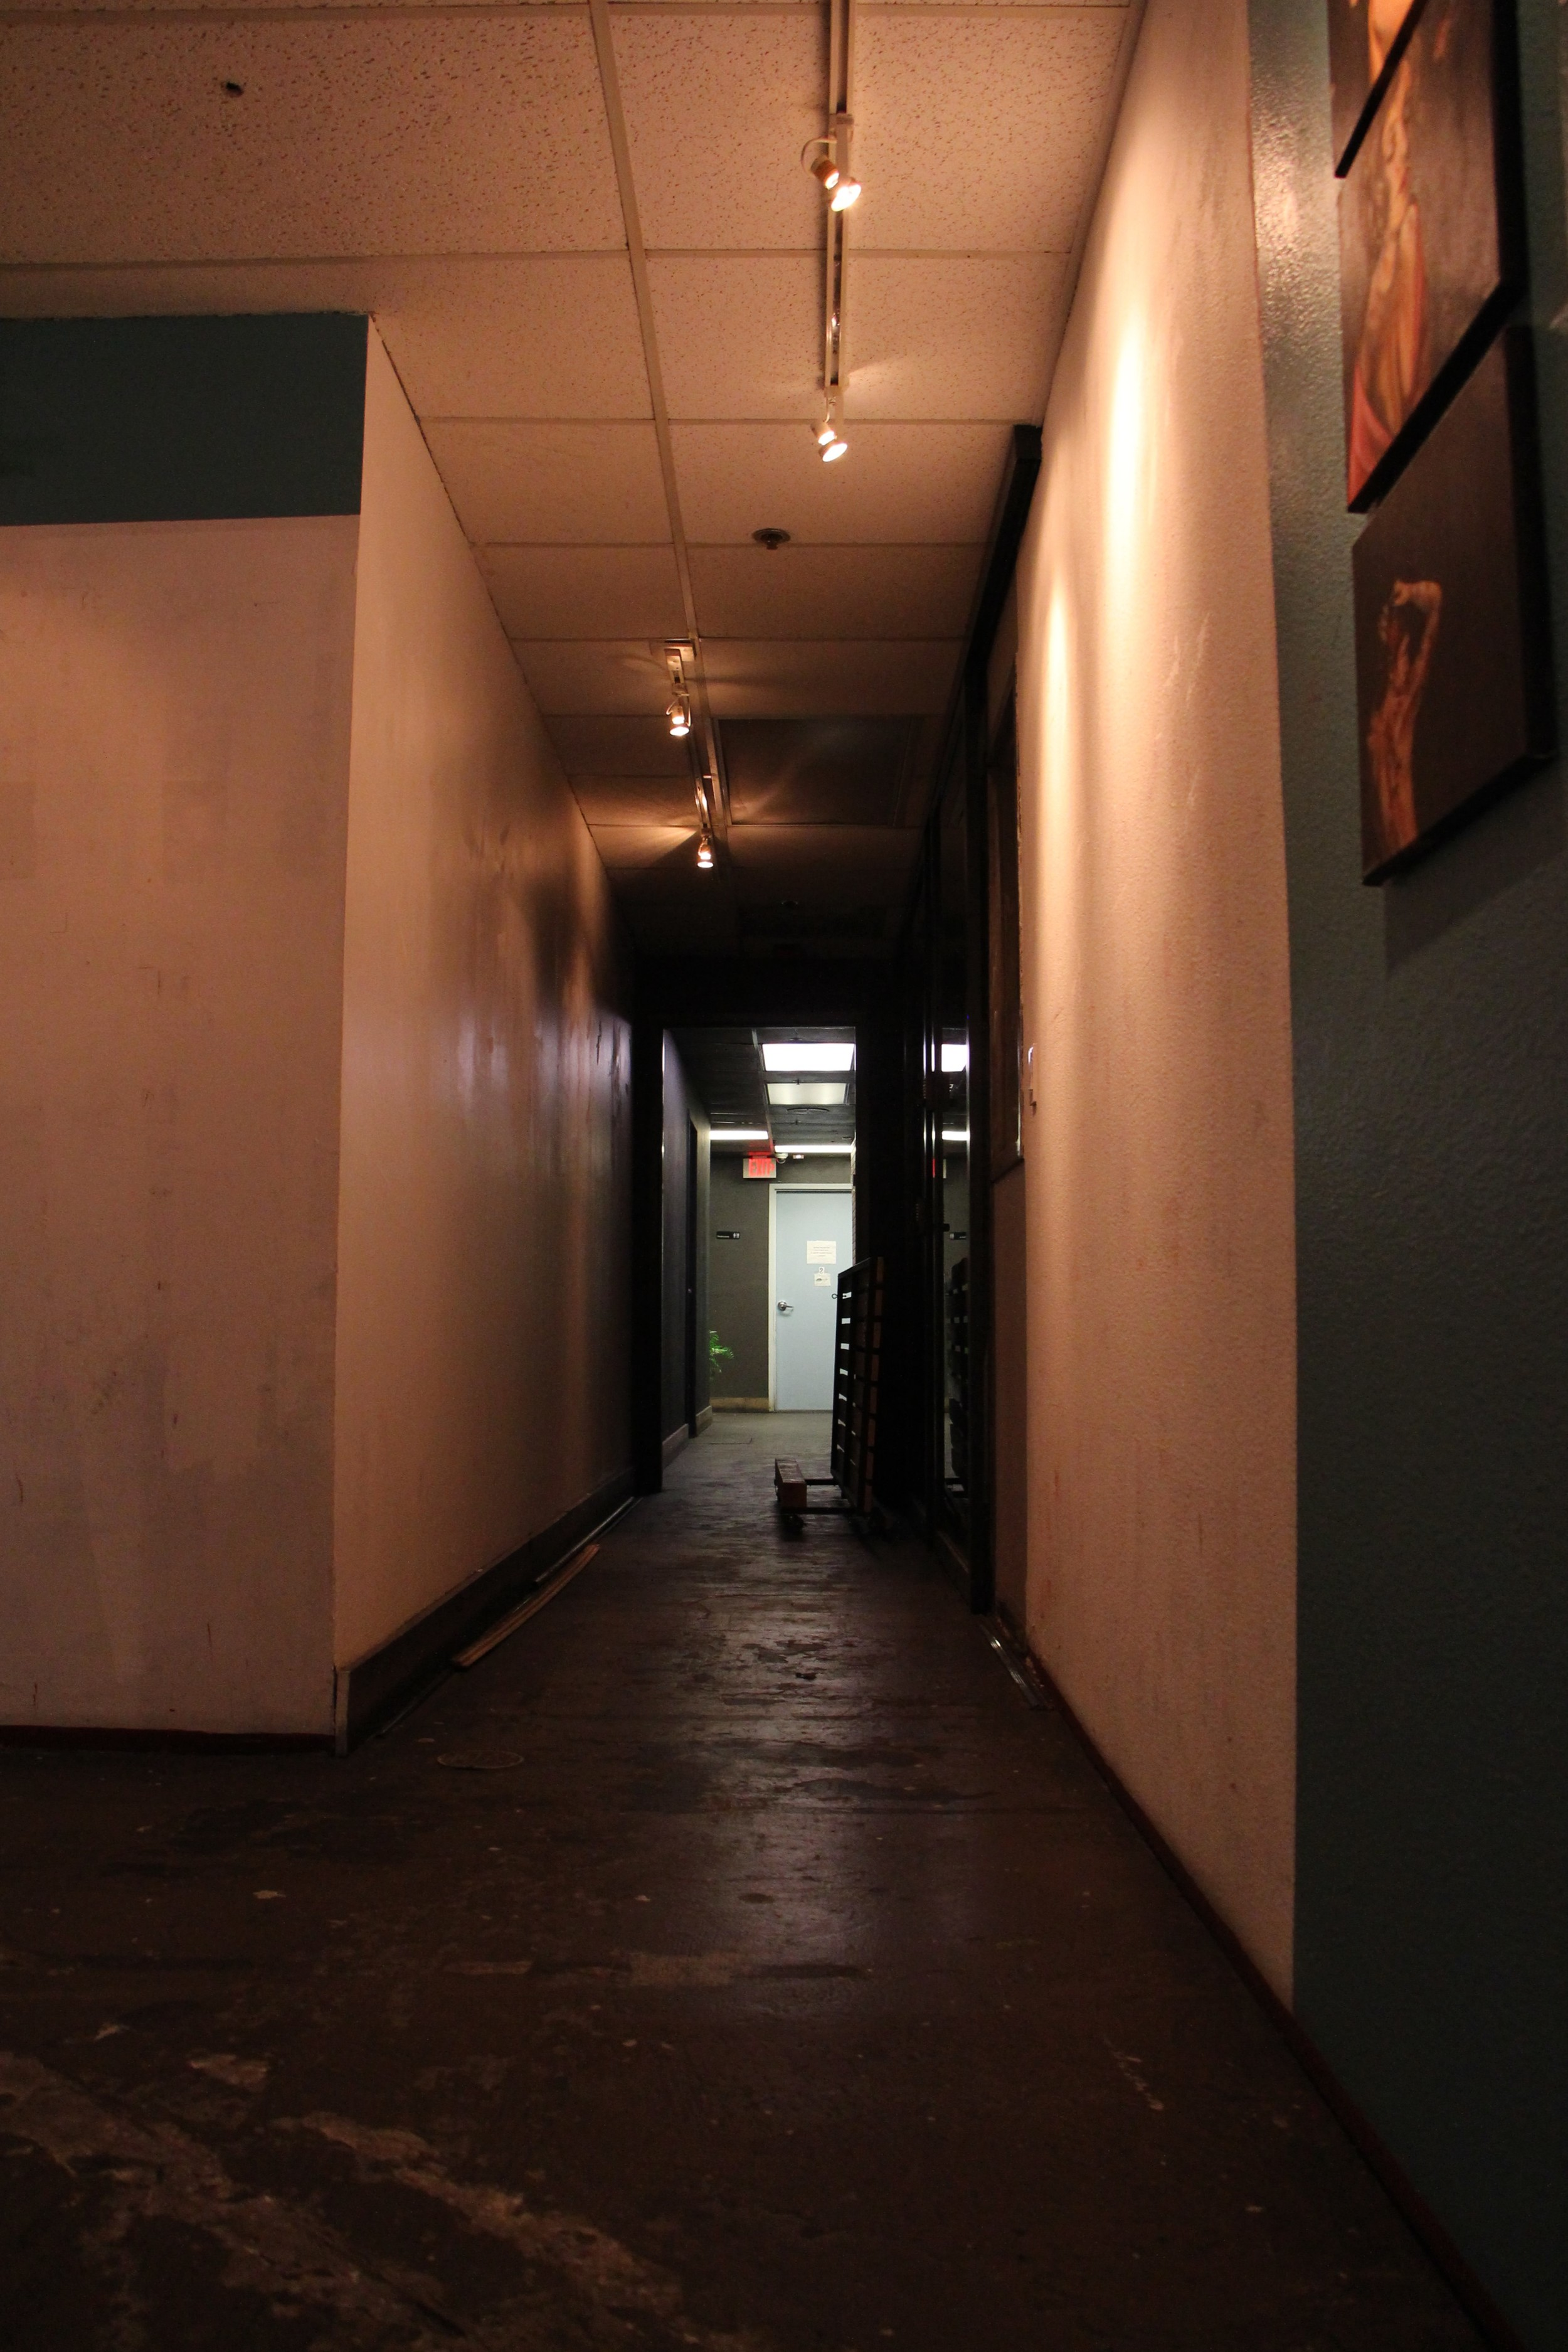 The dark hallway.  A space to create or perform in.